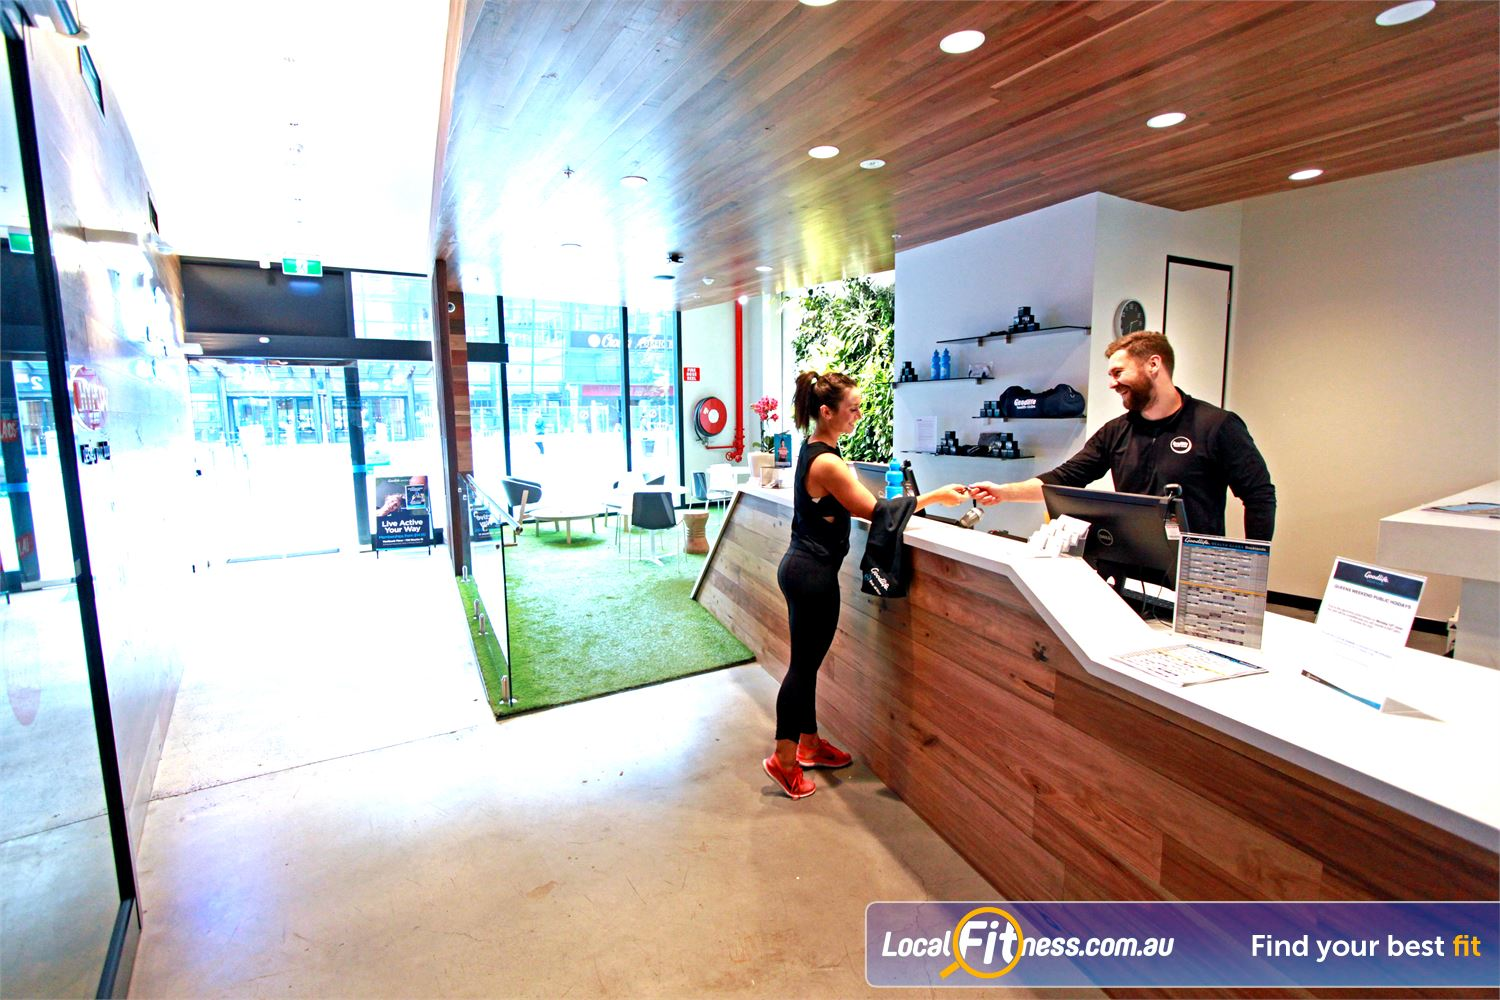 Goodlife Health Clubs Docklands Welcome to Goodlife with 24 hour gym access in Docklands.